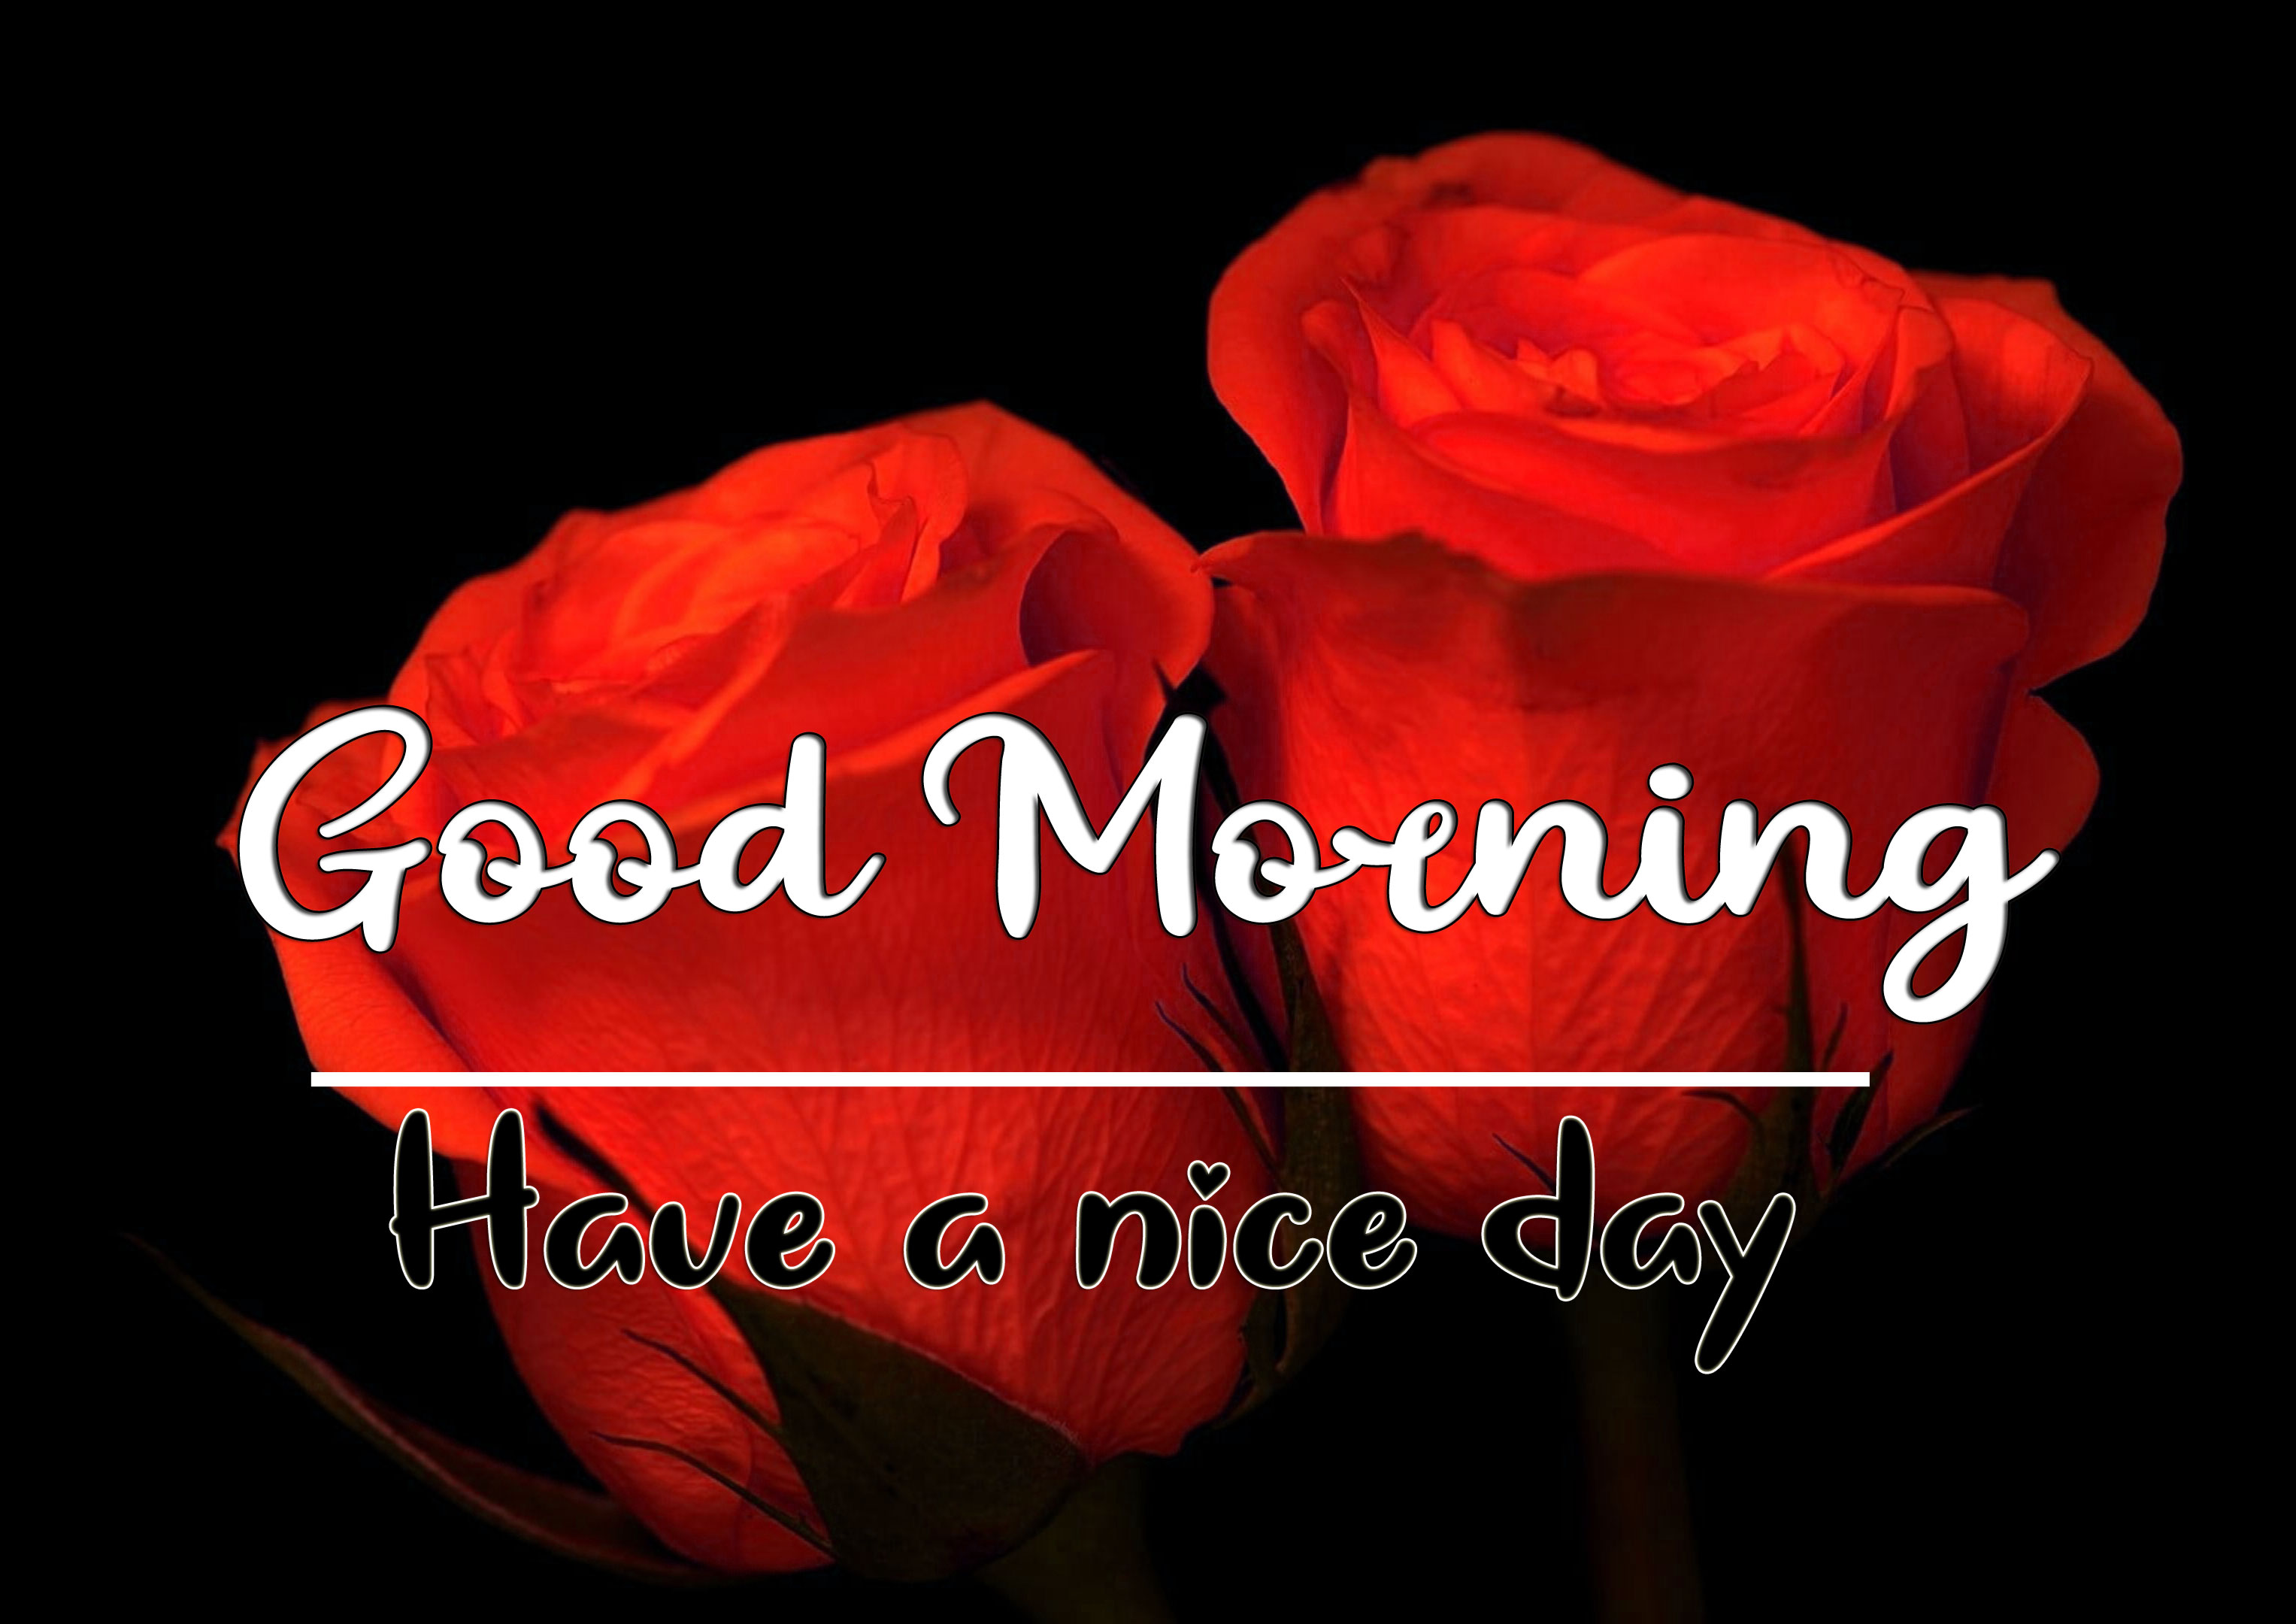 Good Morning Wishes Images HD 1080p 9